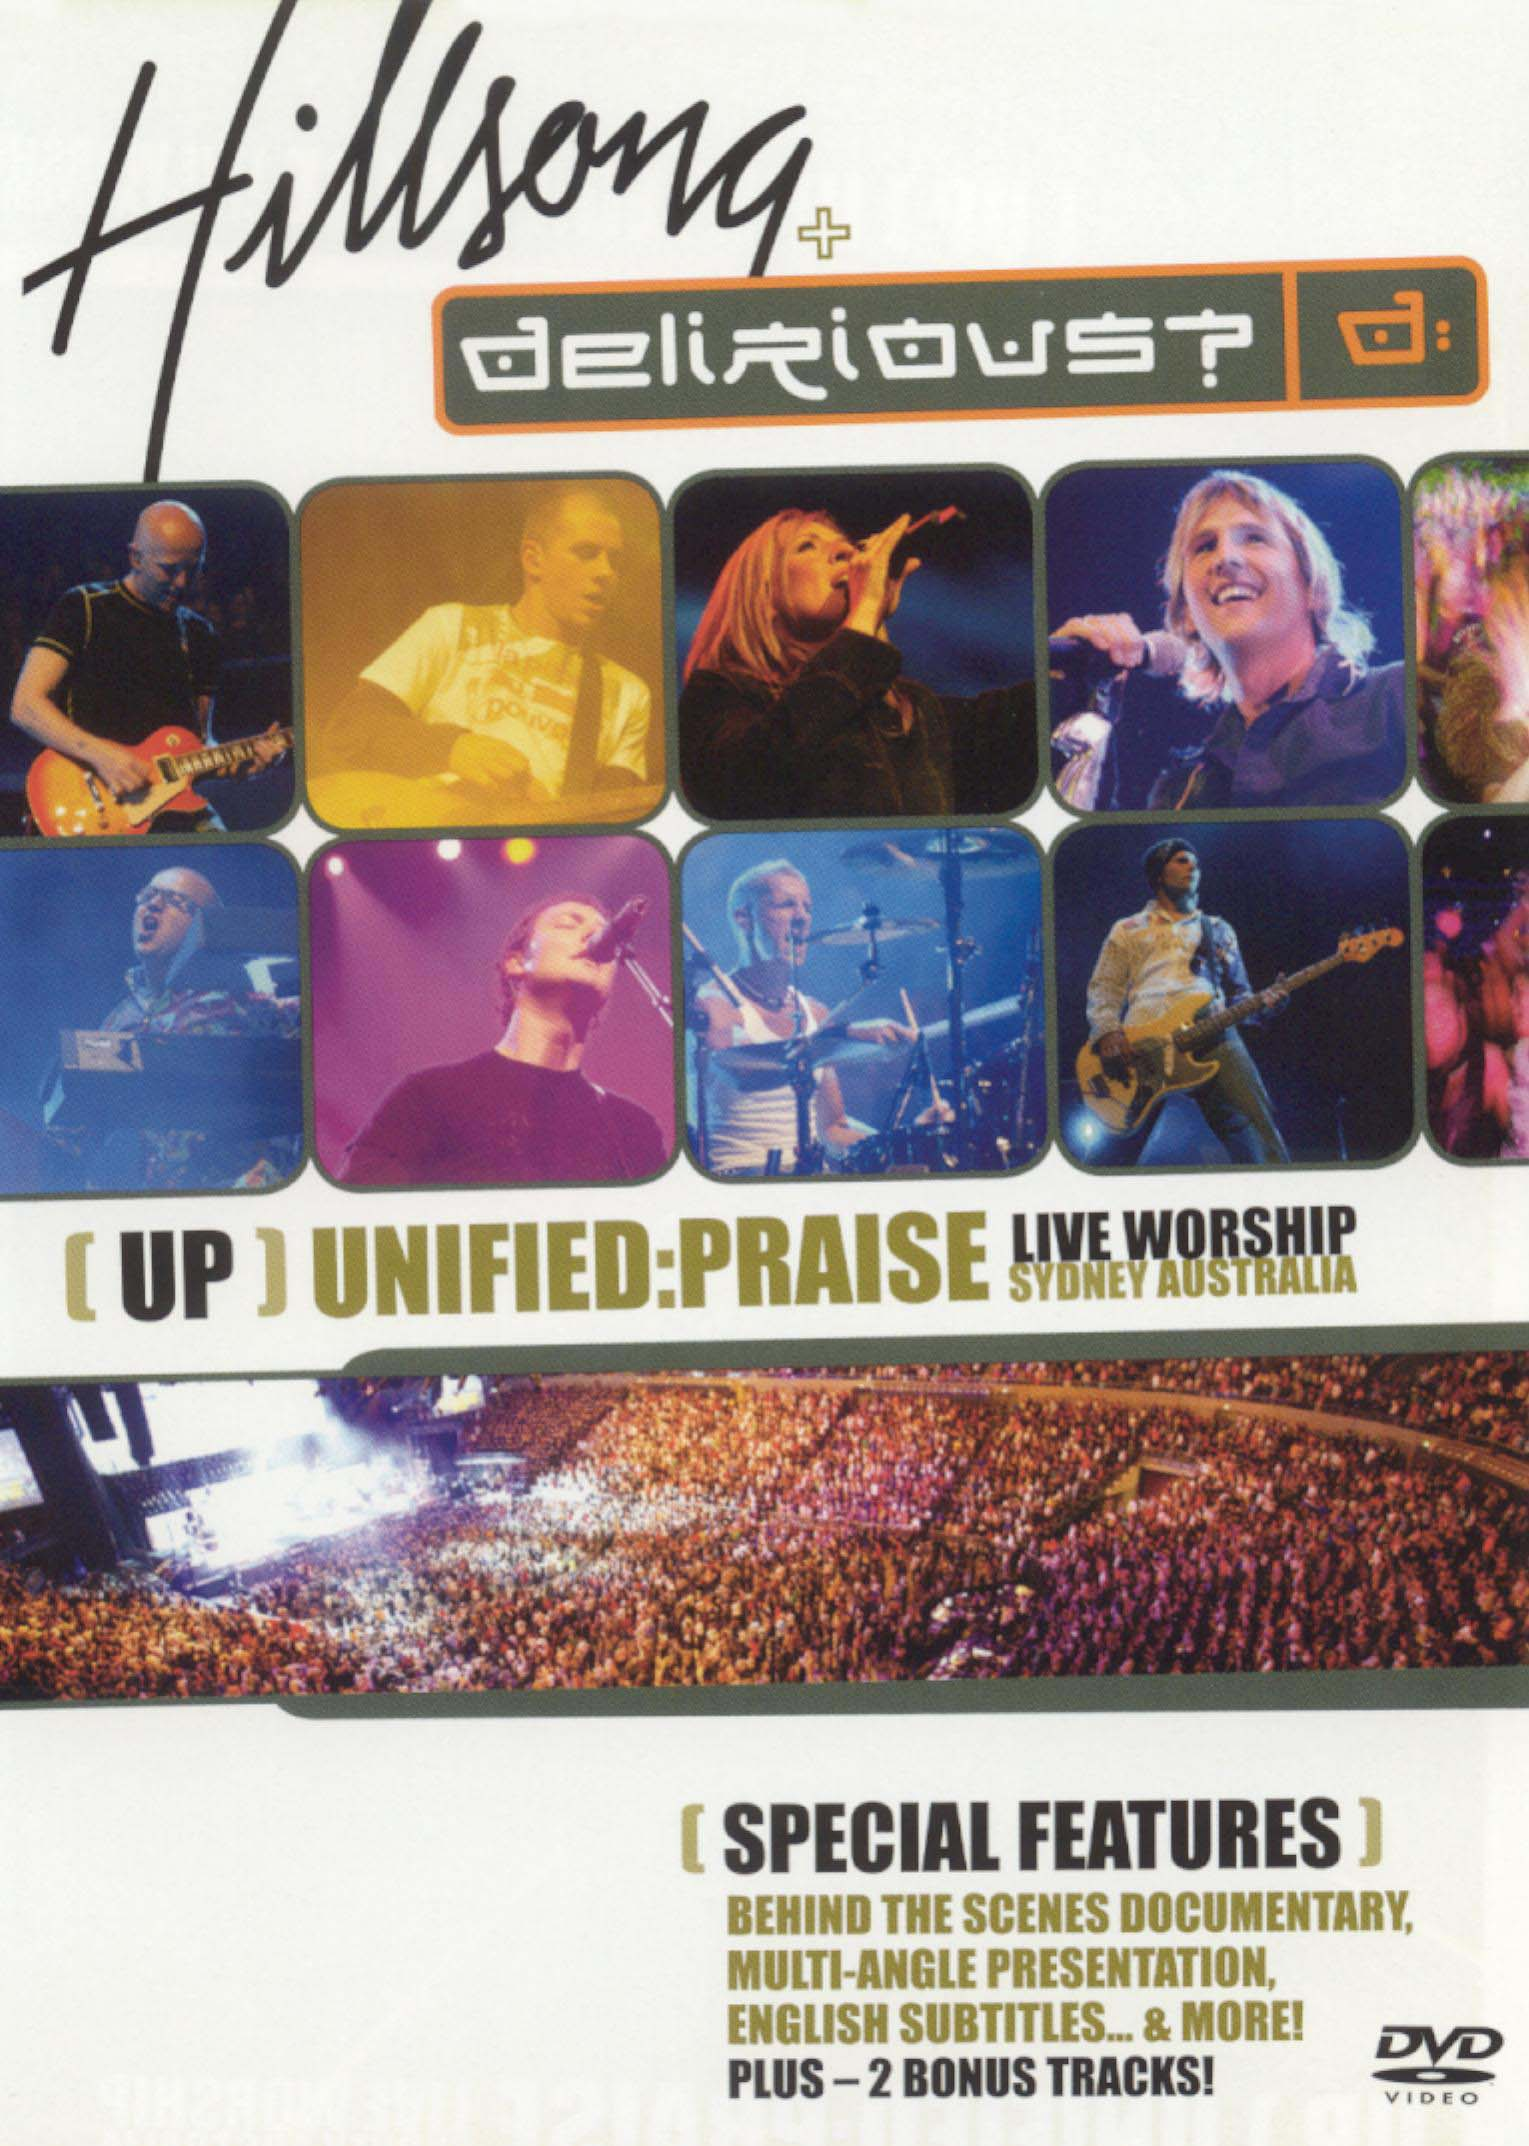 Hillsong: Unified Praise